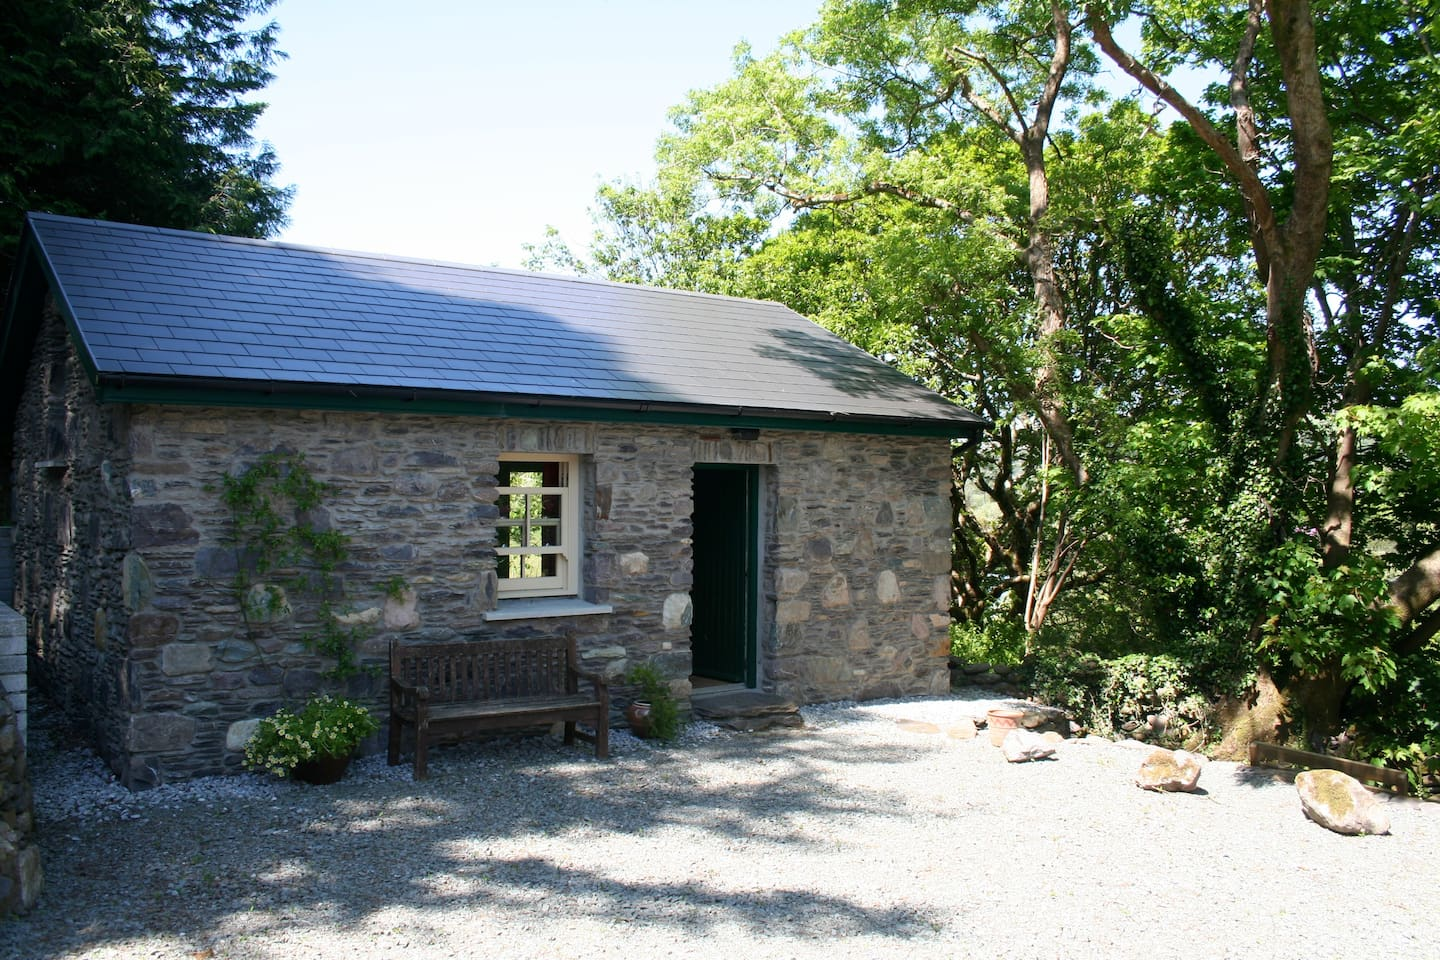 Bothy front view